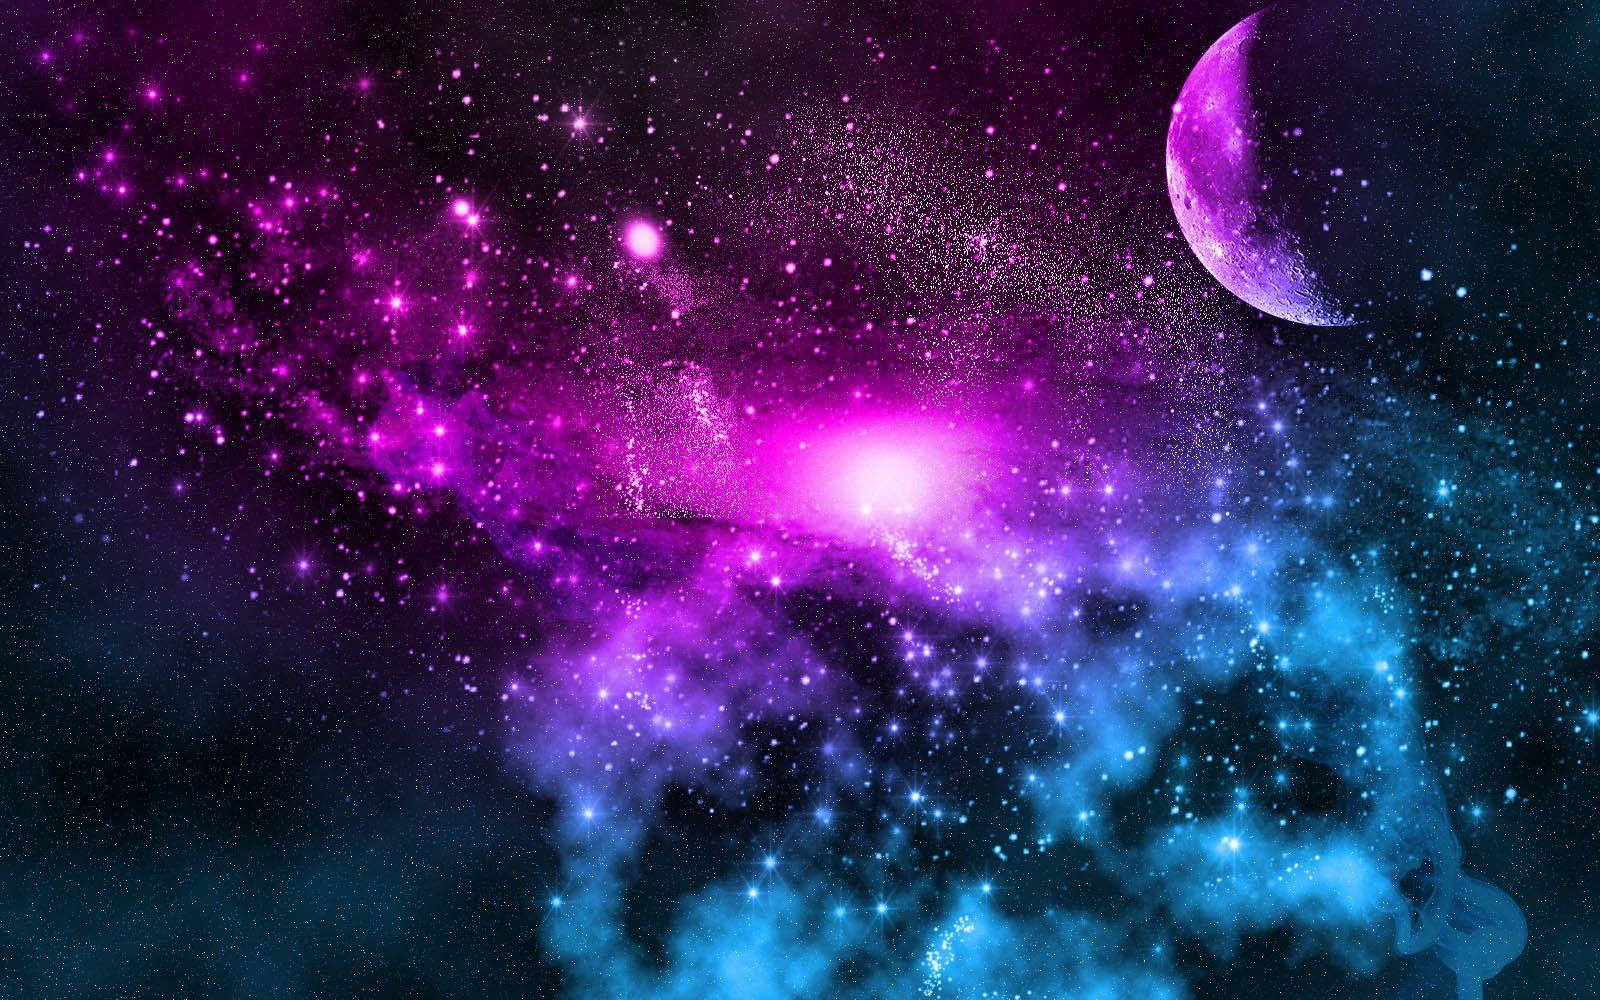 Galaxy Backgrounds - Wallpaper Cave